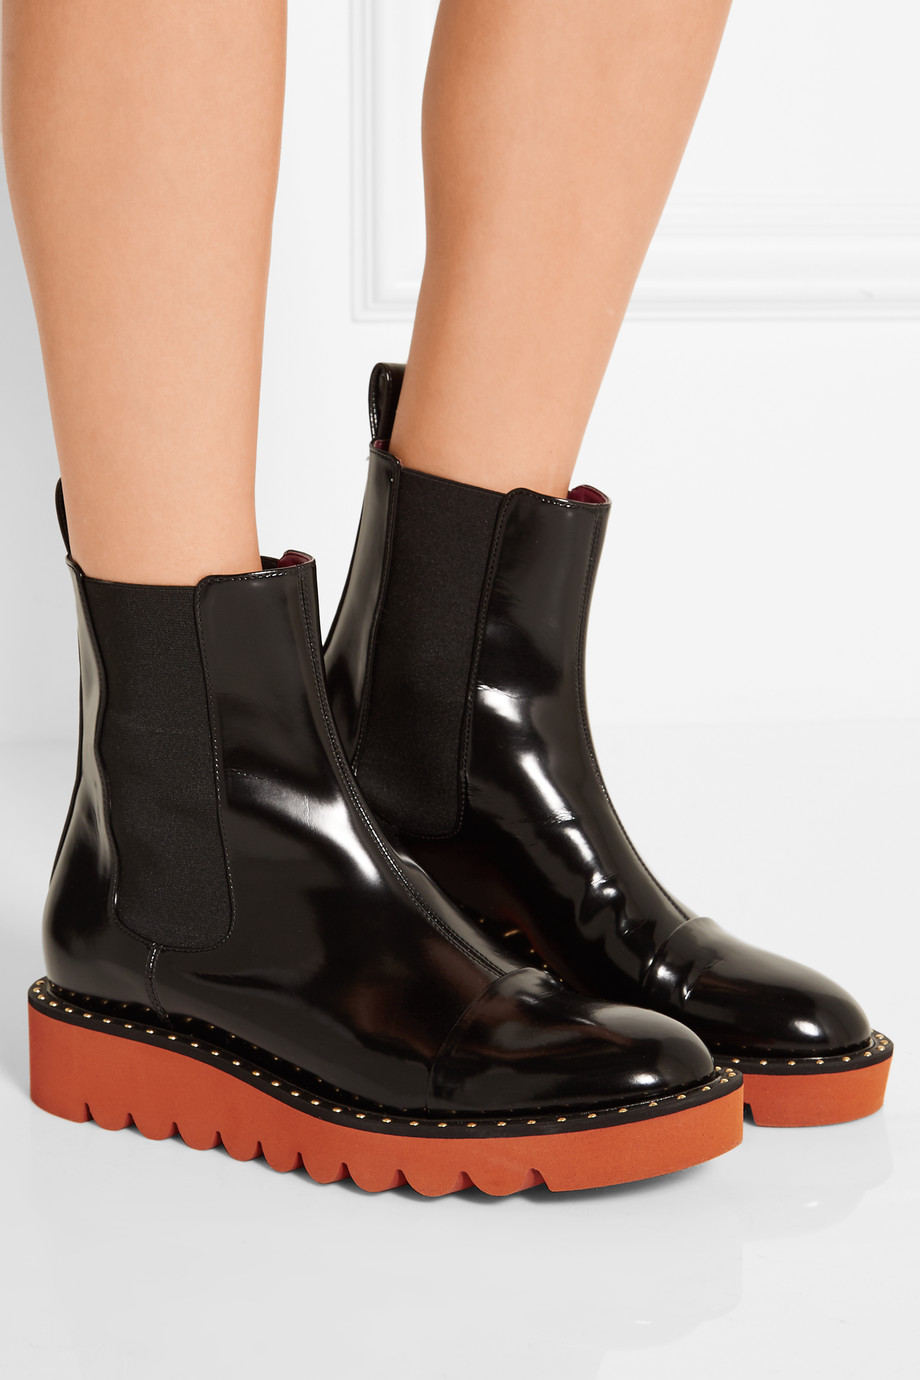 stella-mccartney-boots-at-net-a-porter